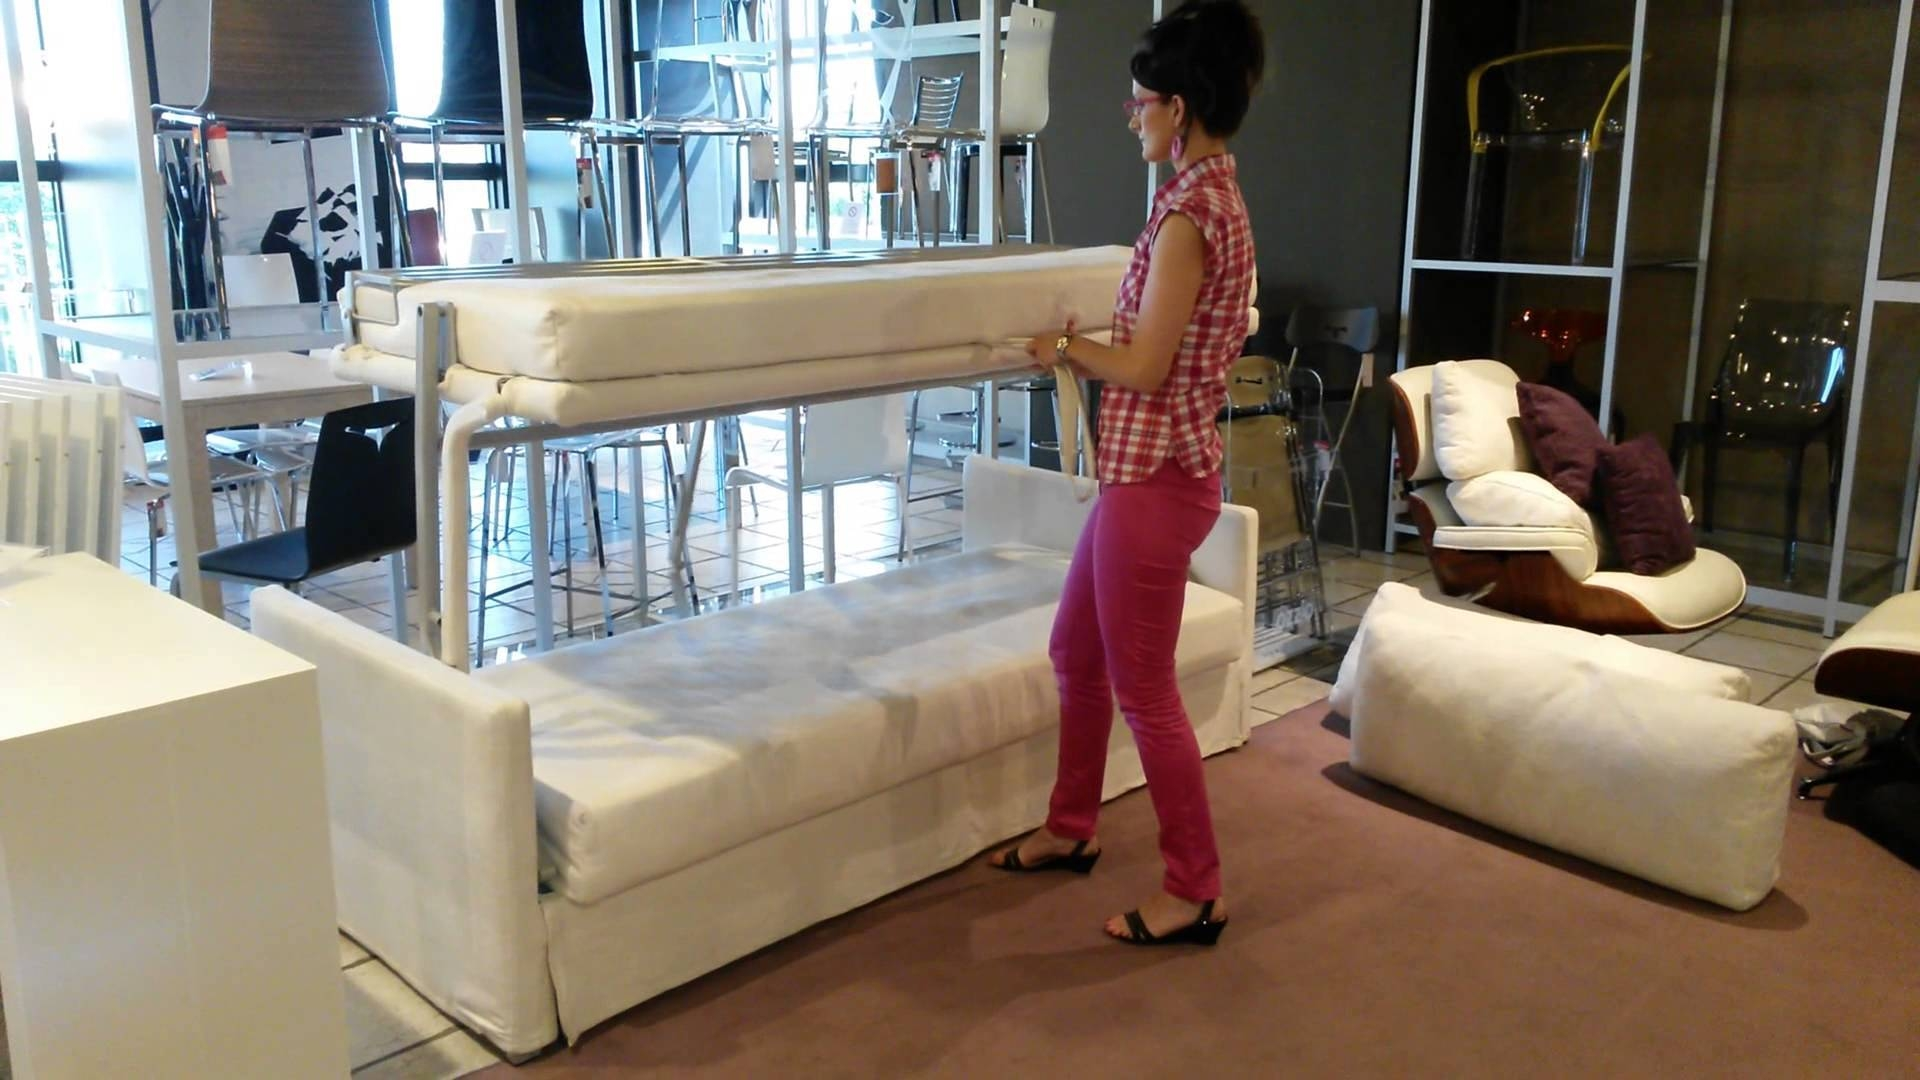 George Sofa Bunk Bed - Youtube regarding Sofas Converts to Bunk Bed (Image 6 of 15)